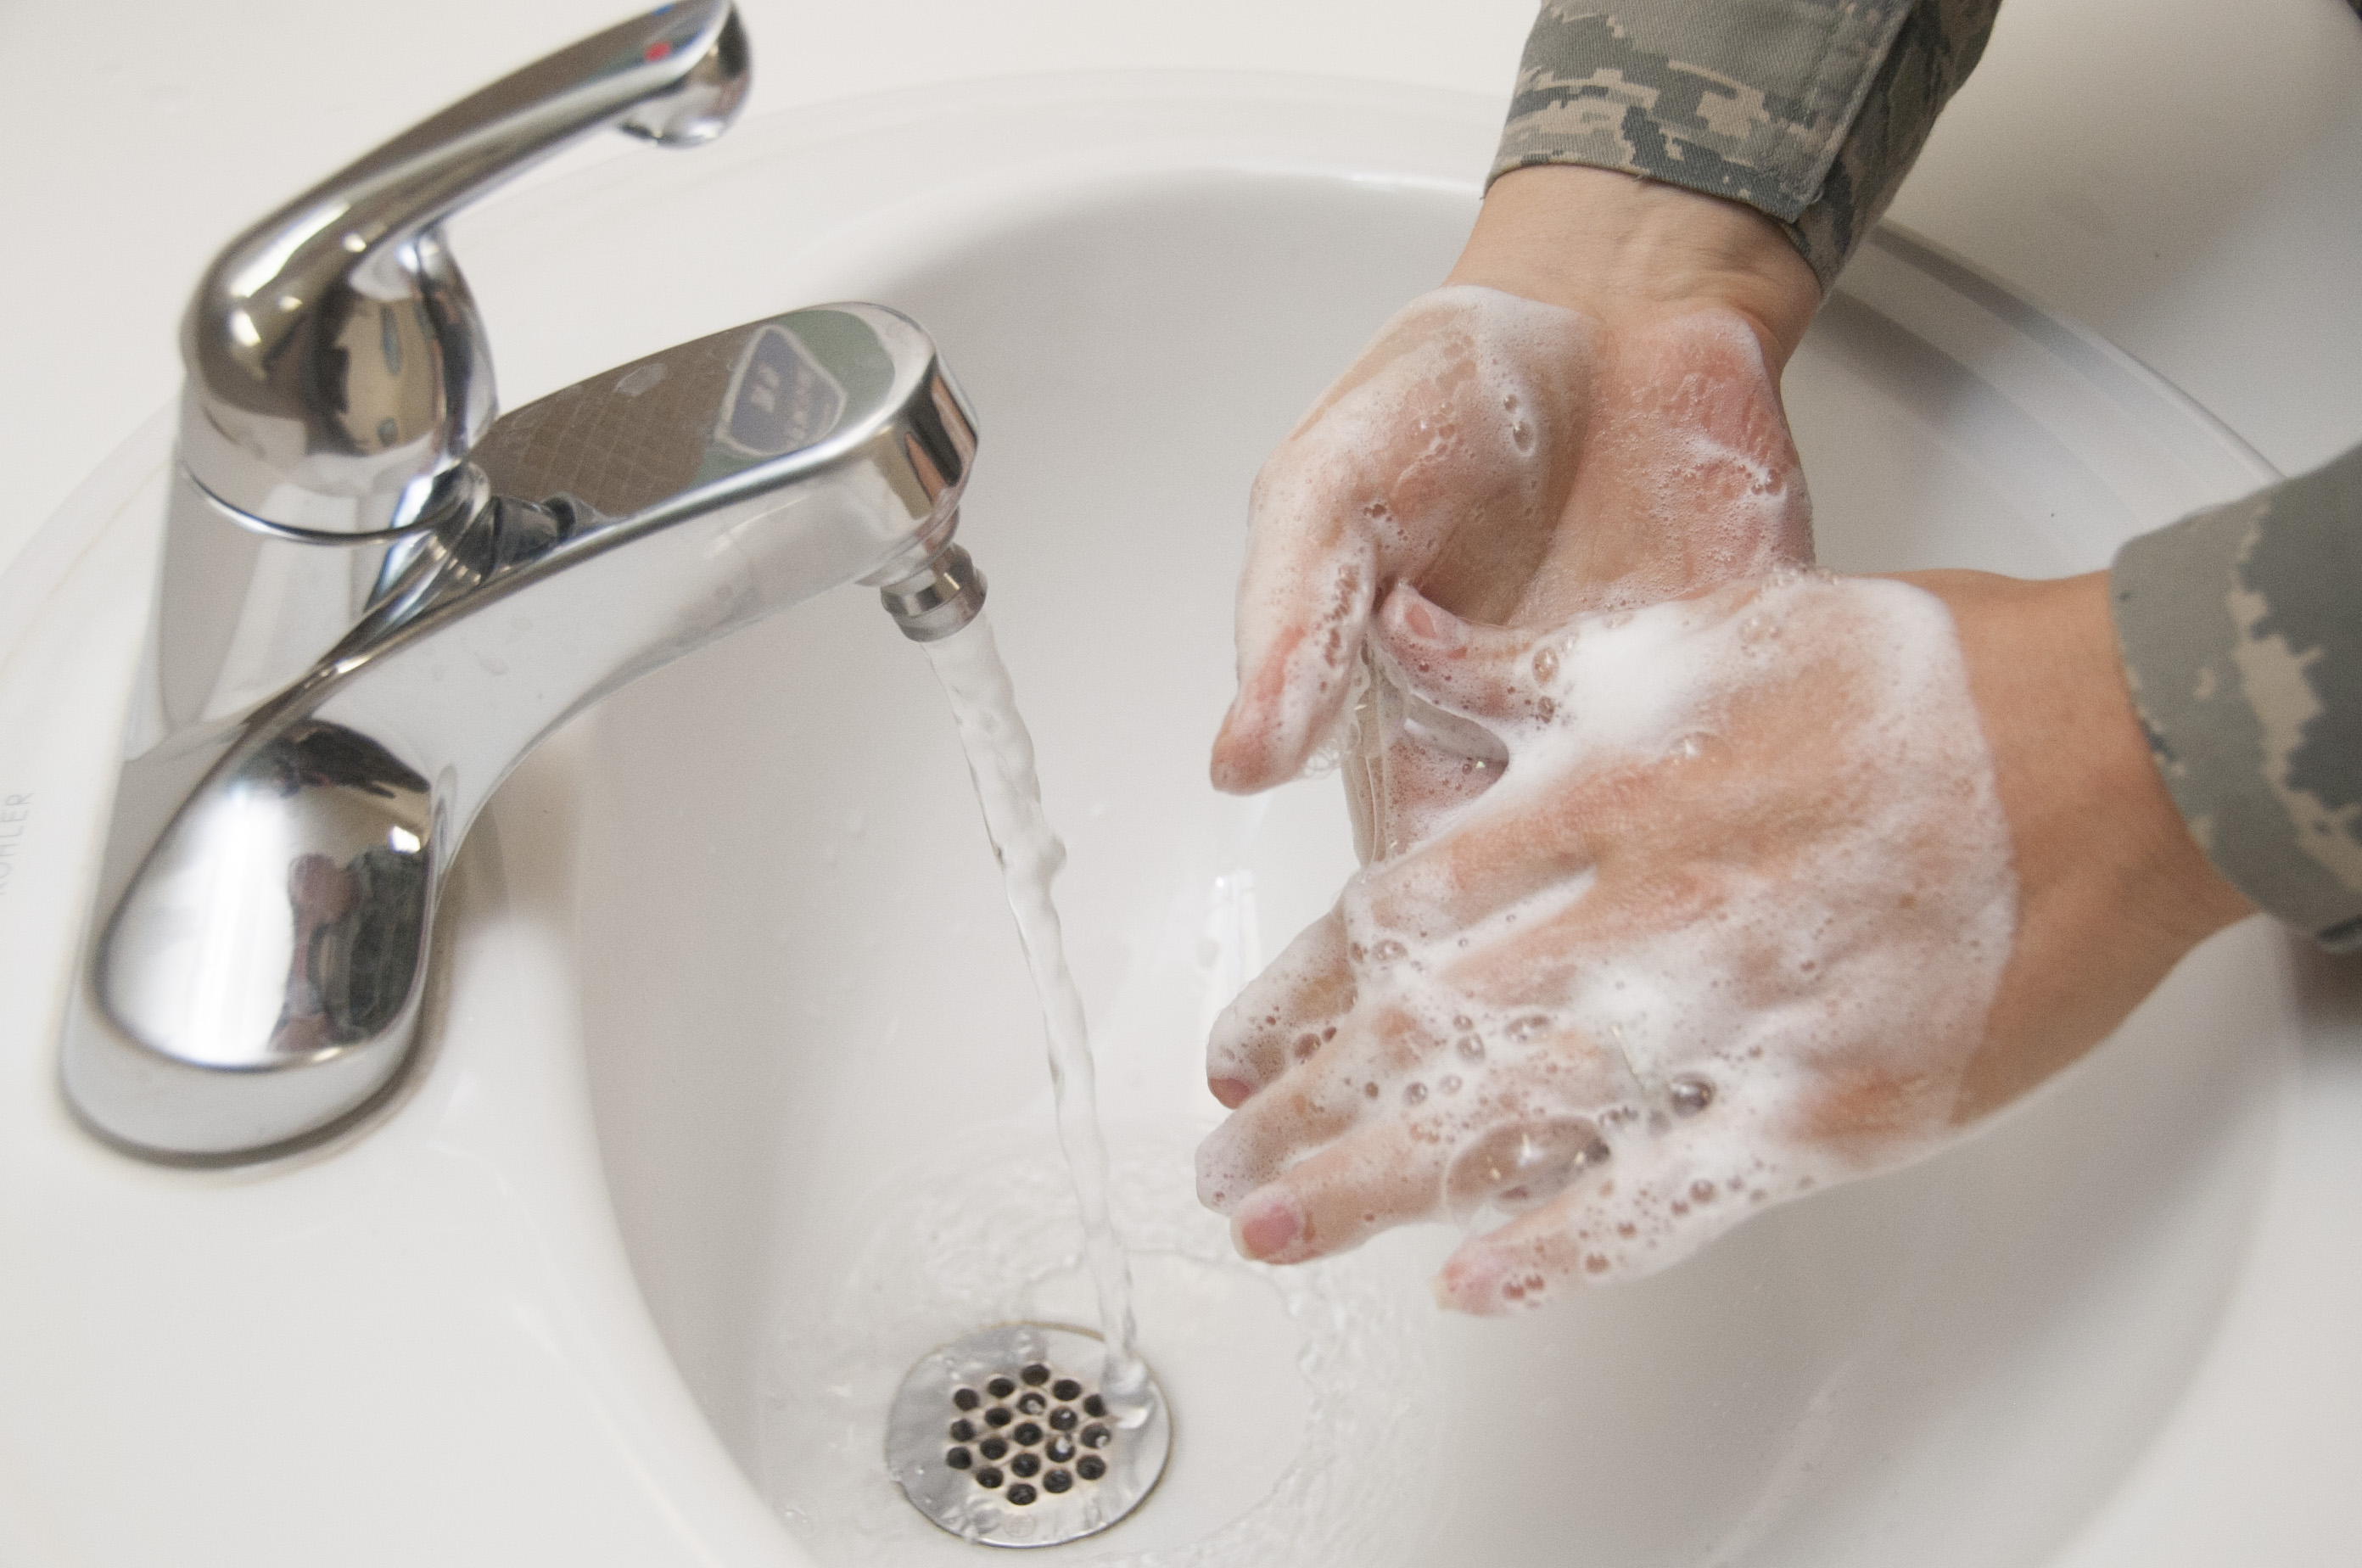 Handwashing with soap